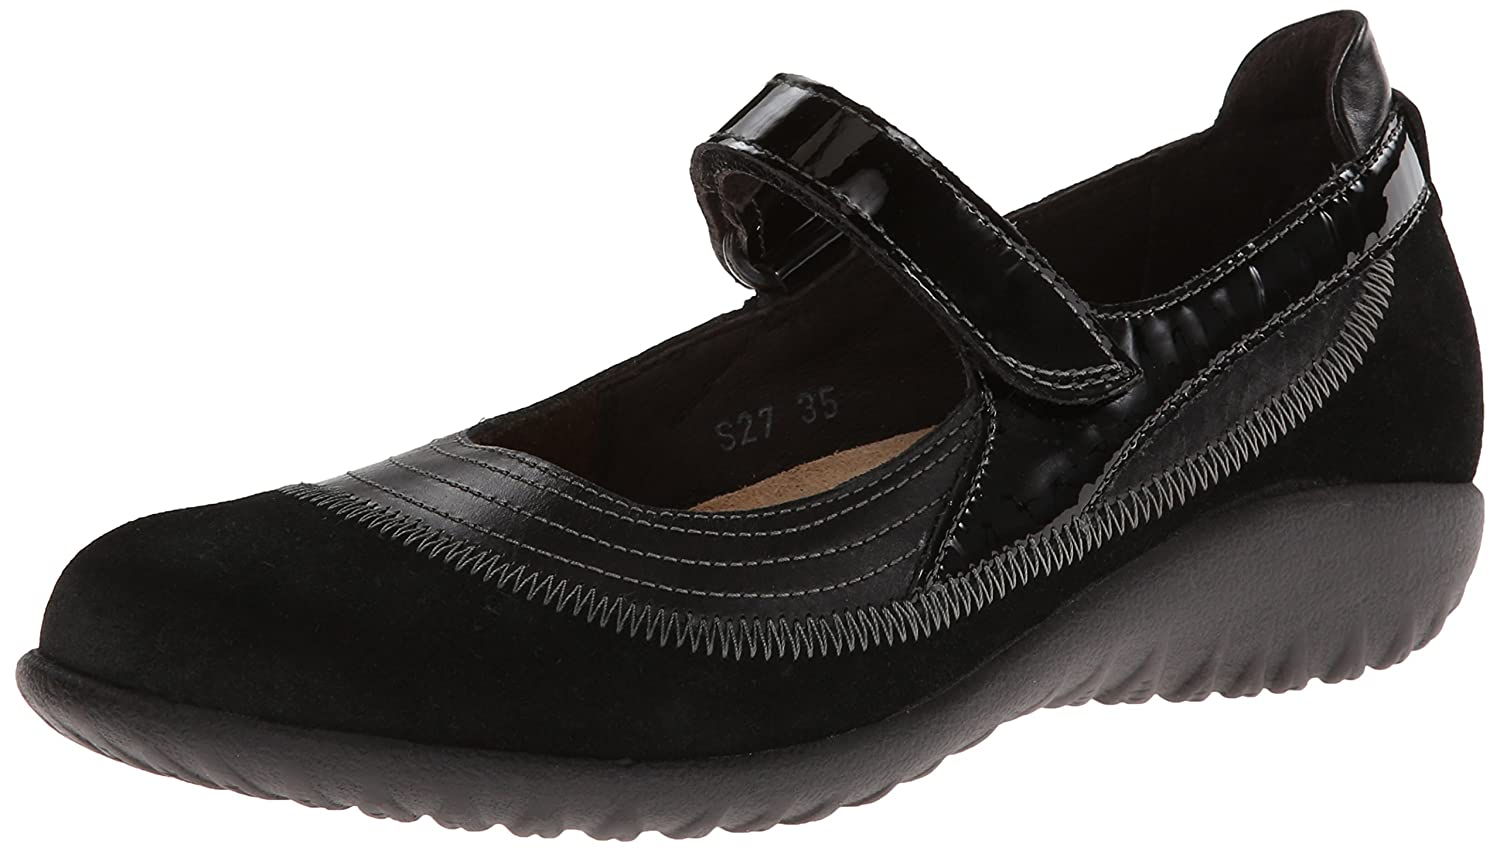 NAOT Footwear Women's Kirei Mary Jane Flat B003D3PPVA 38 EU/6.5 - 7 M US|Black Madras Leather/Black Suede/Black Patent Leather